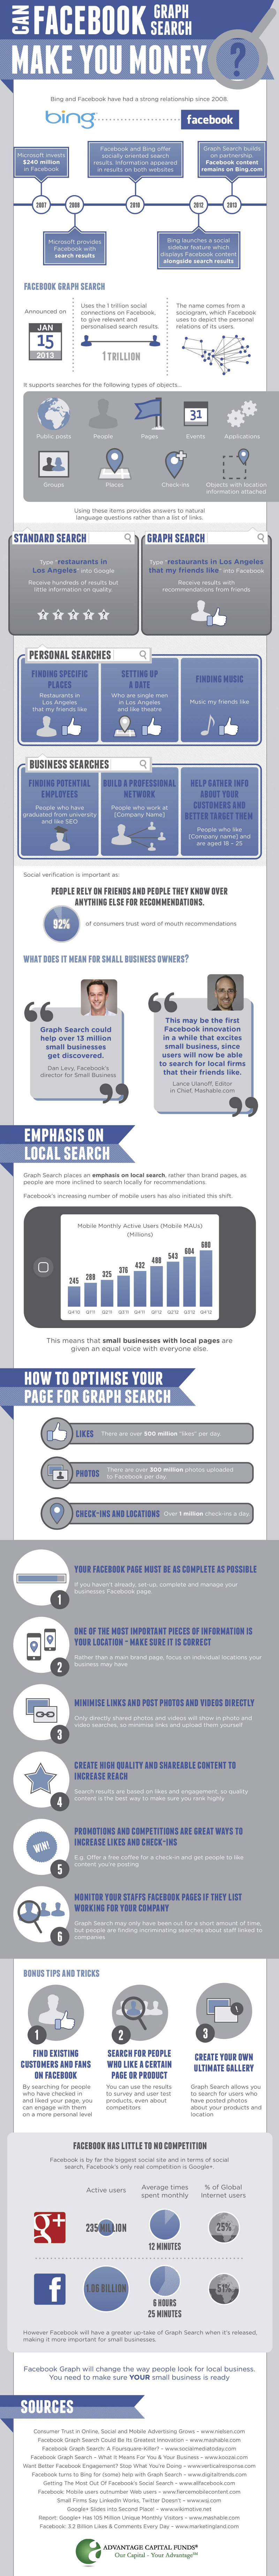 Facebook Social Graph Search SEO Guide